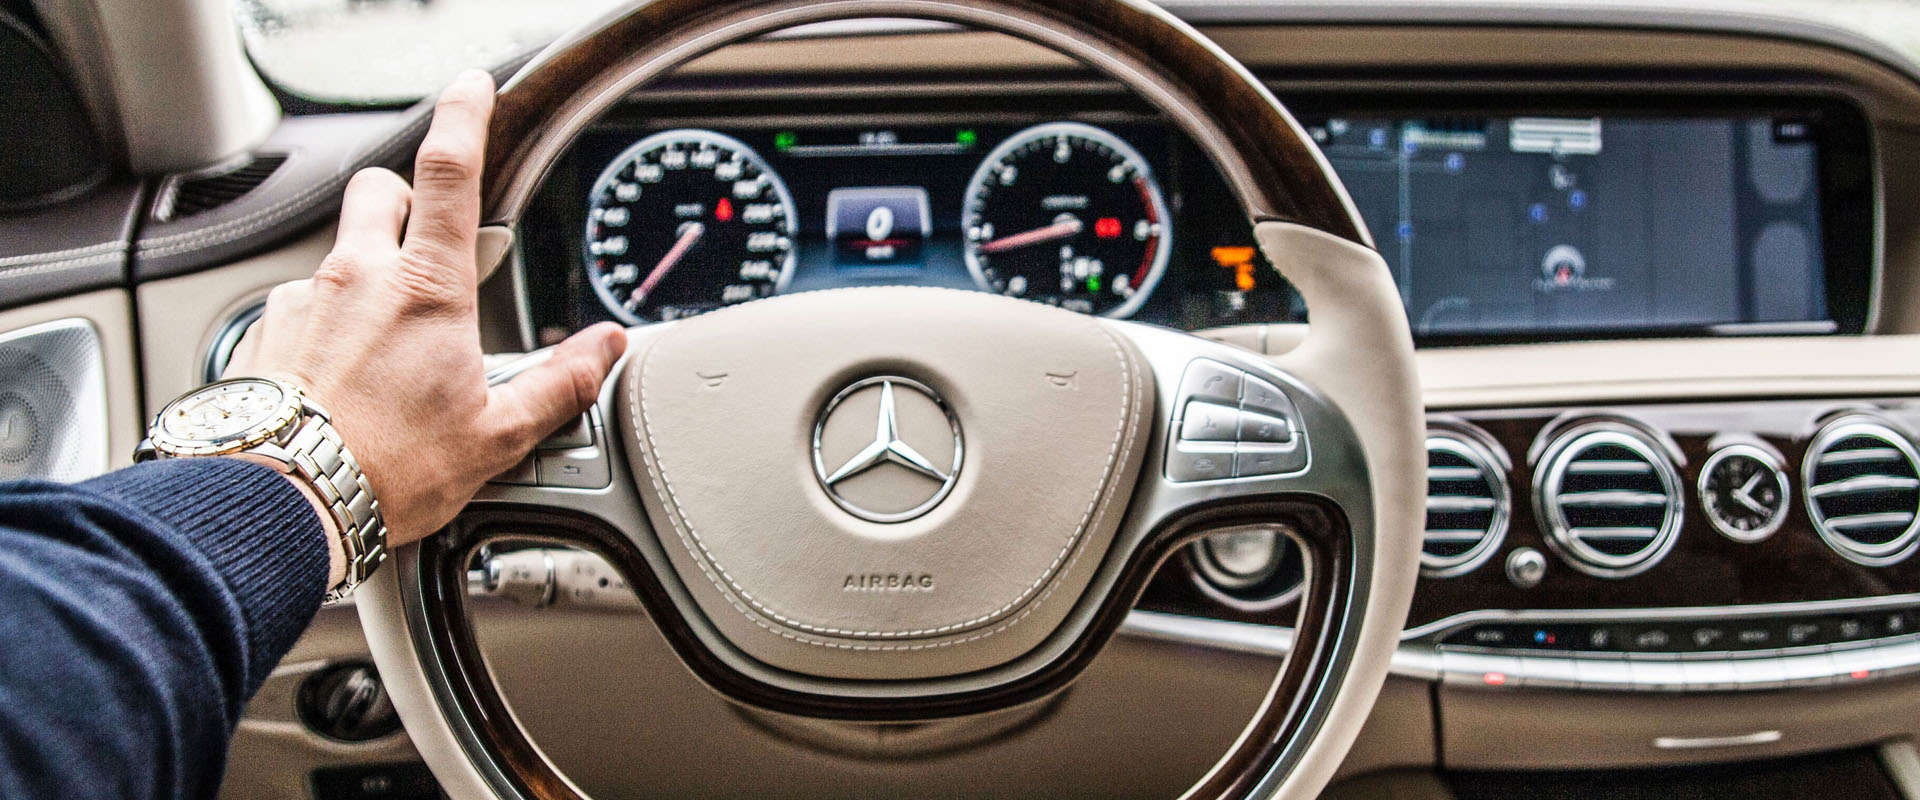 Hand on a Mercedes Benz steering wheel